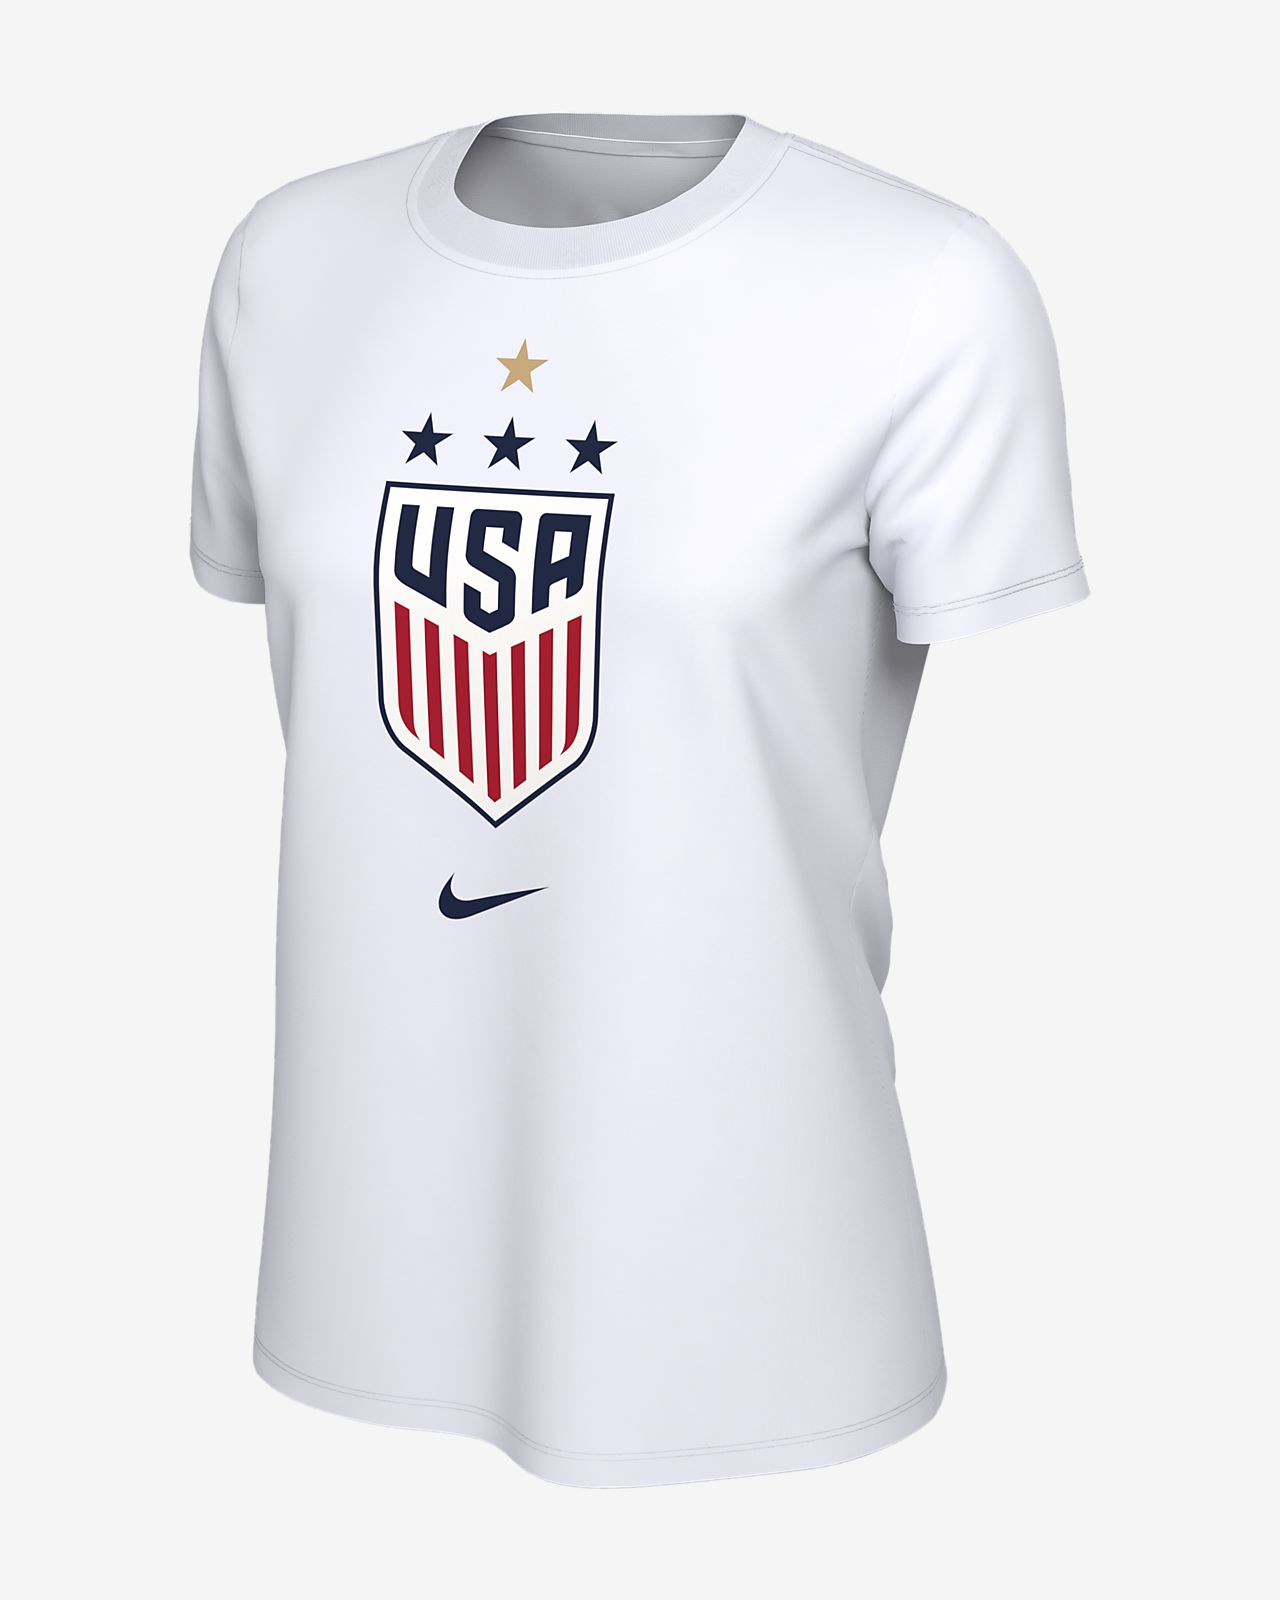 Nike Dri-FIT (4-Star) Women's T-Shirt